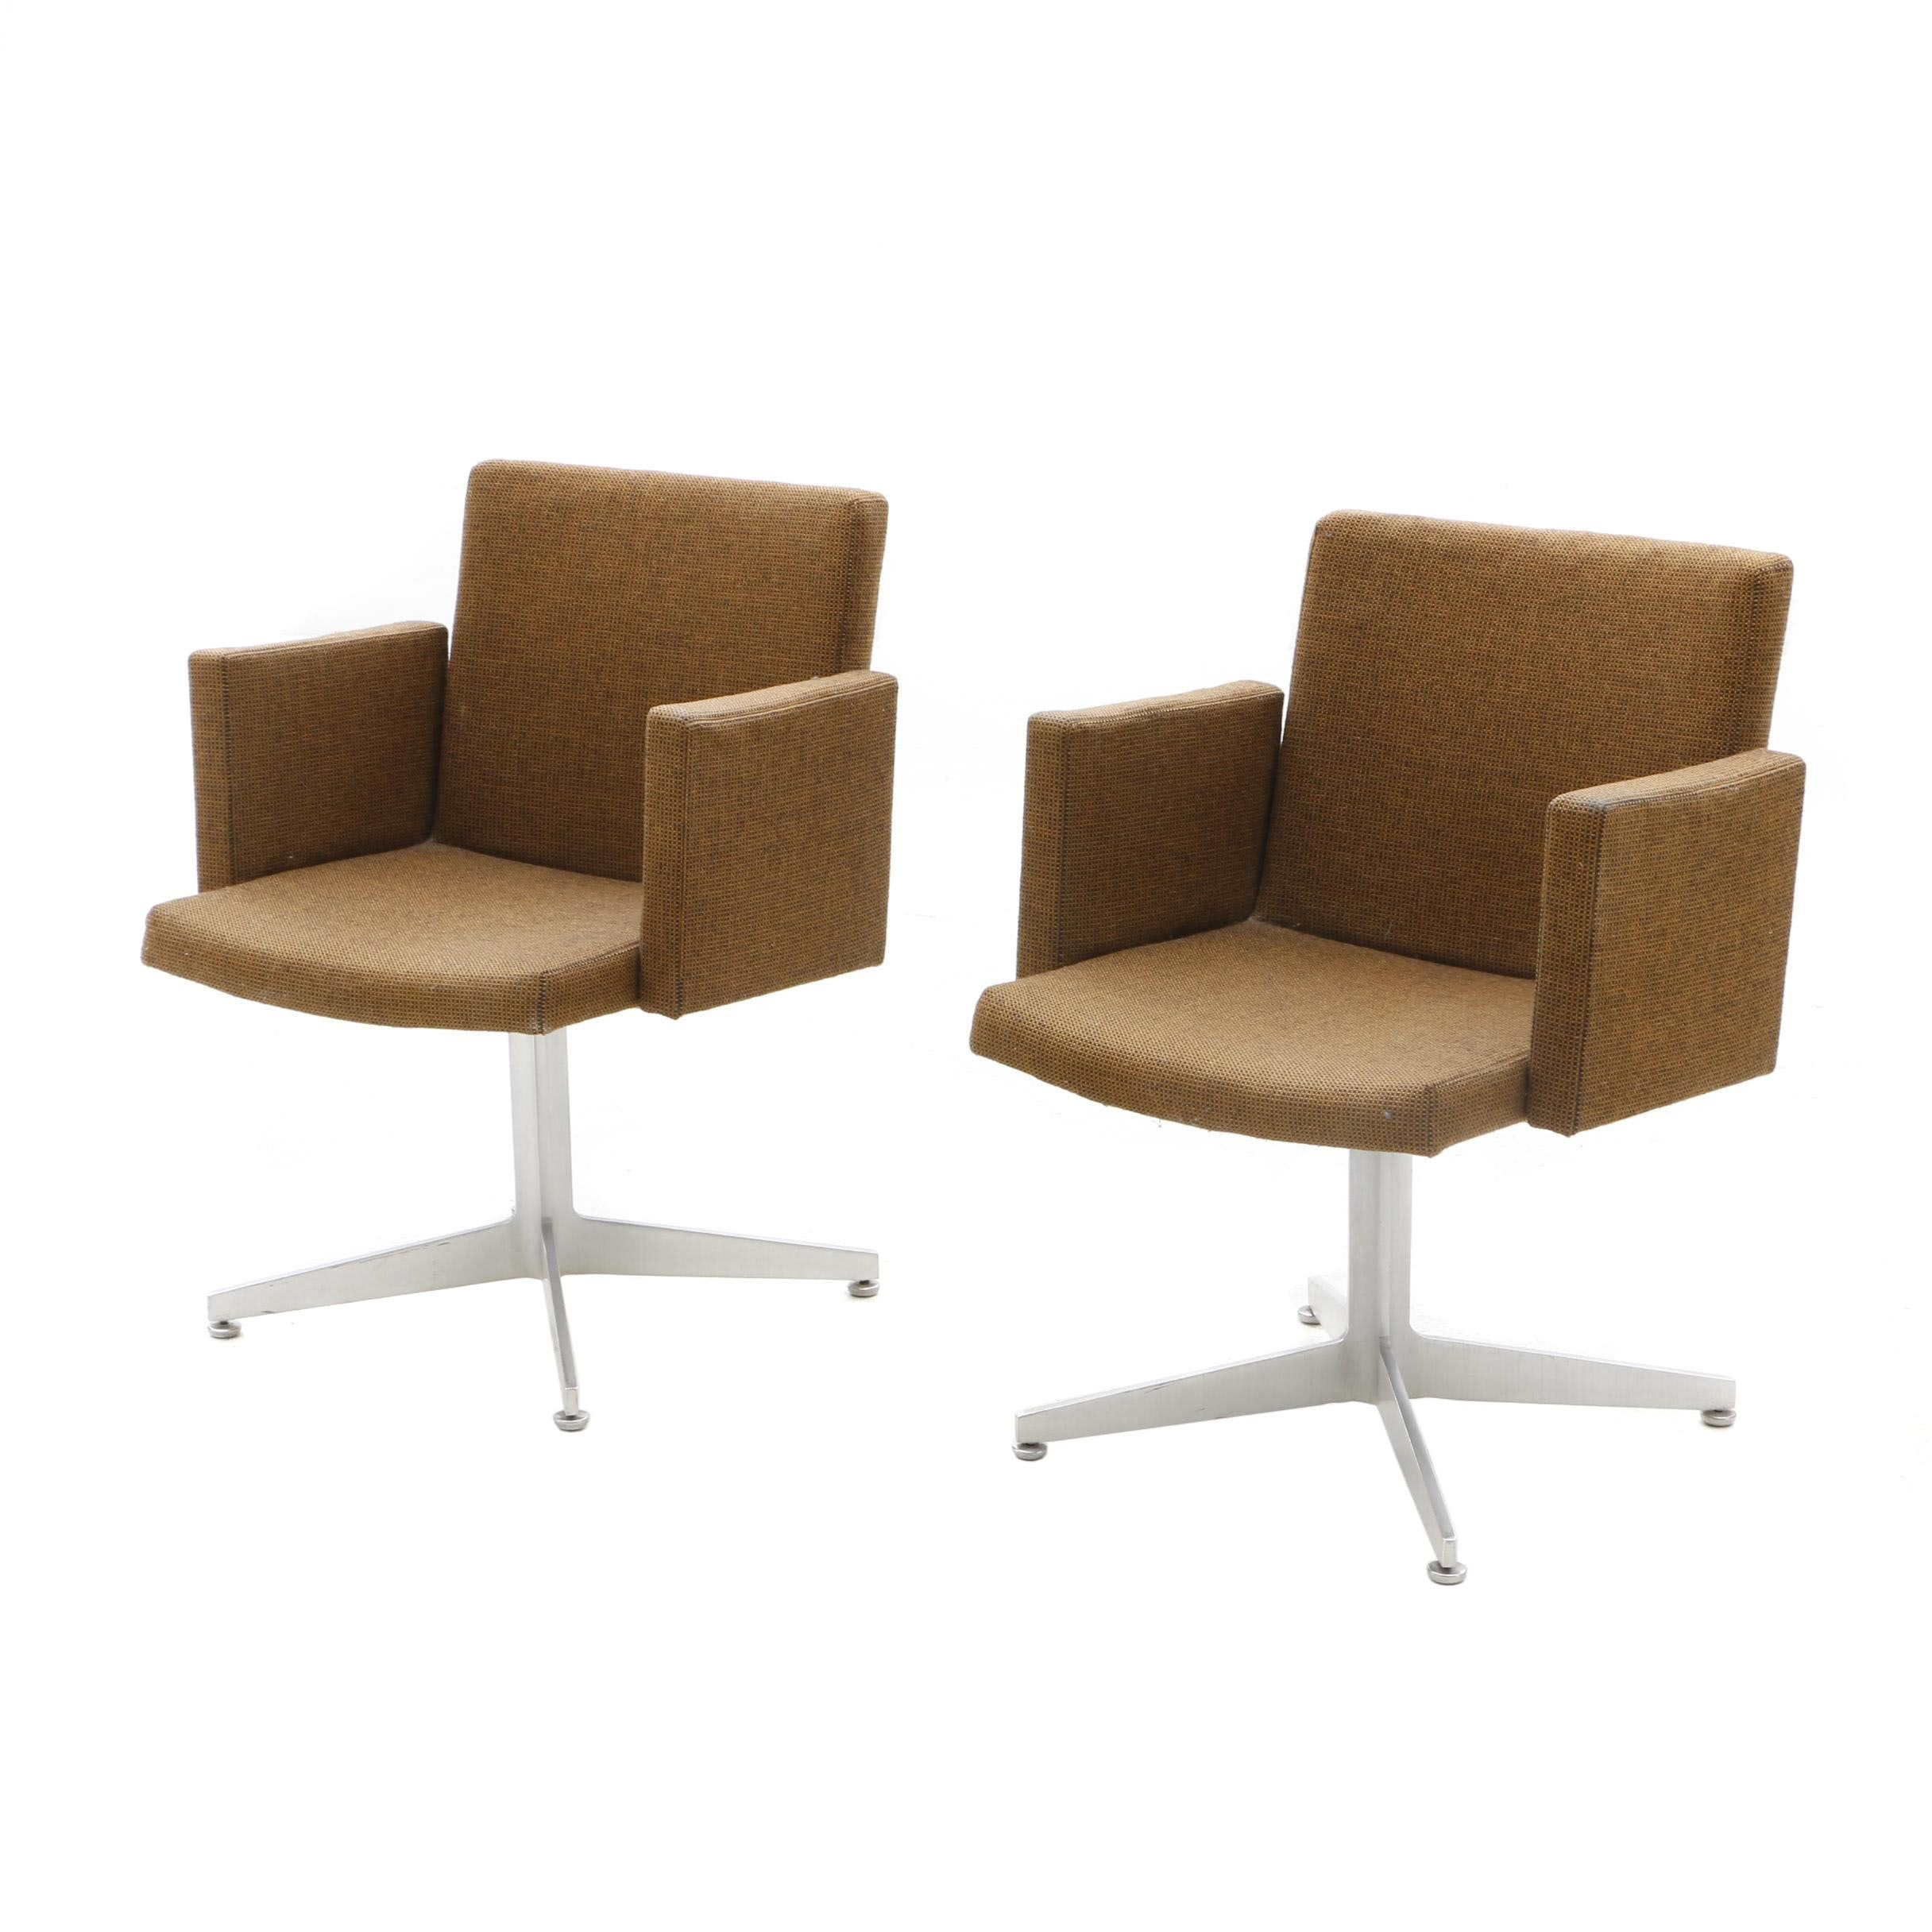 Two Mid-Century Good Form Office Chairs